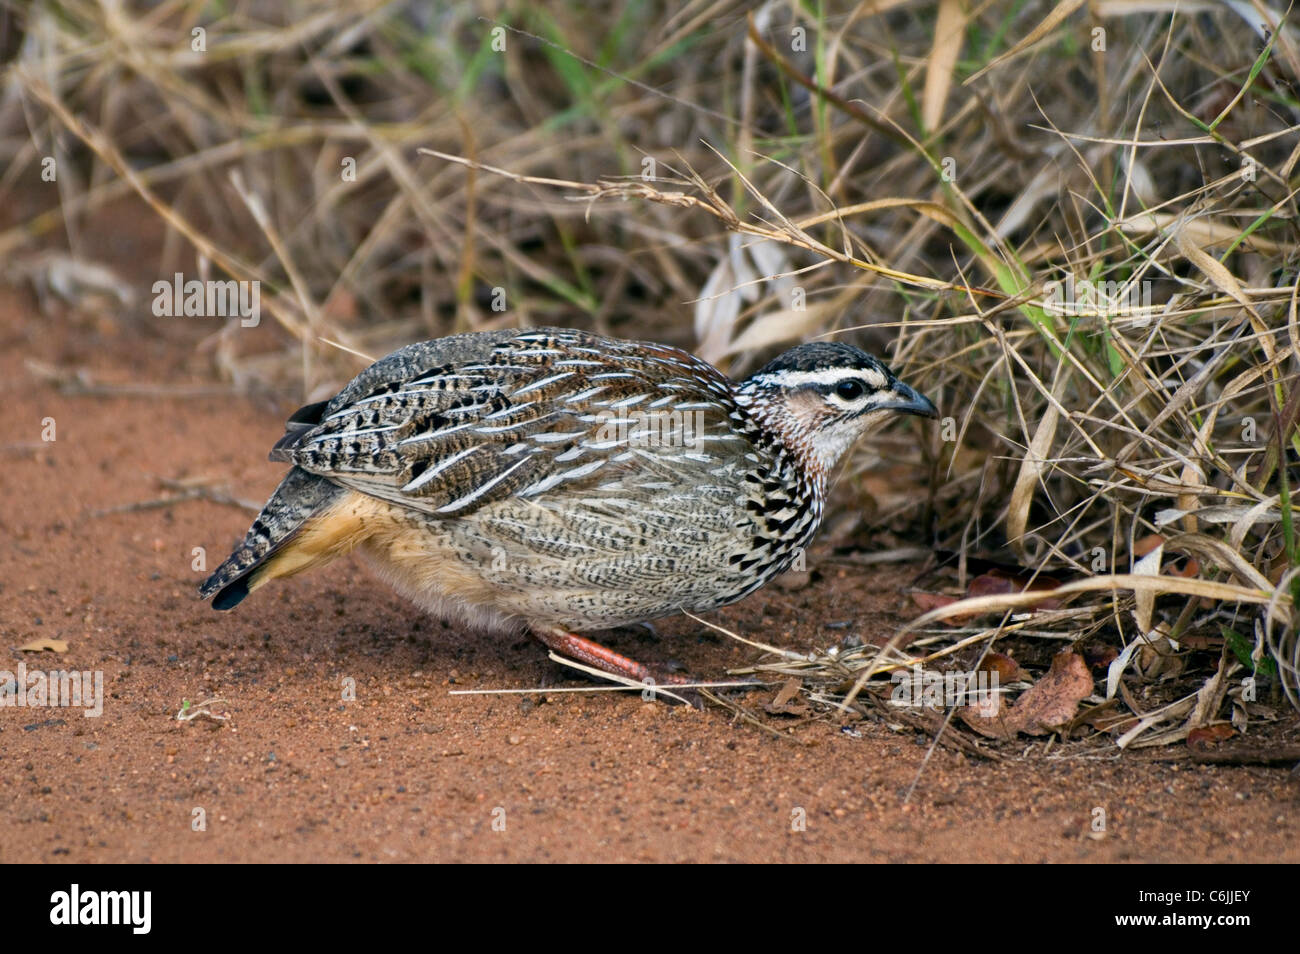 Crested Francolin foraging. - Stock Image